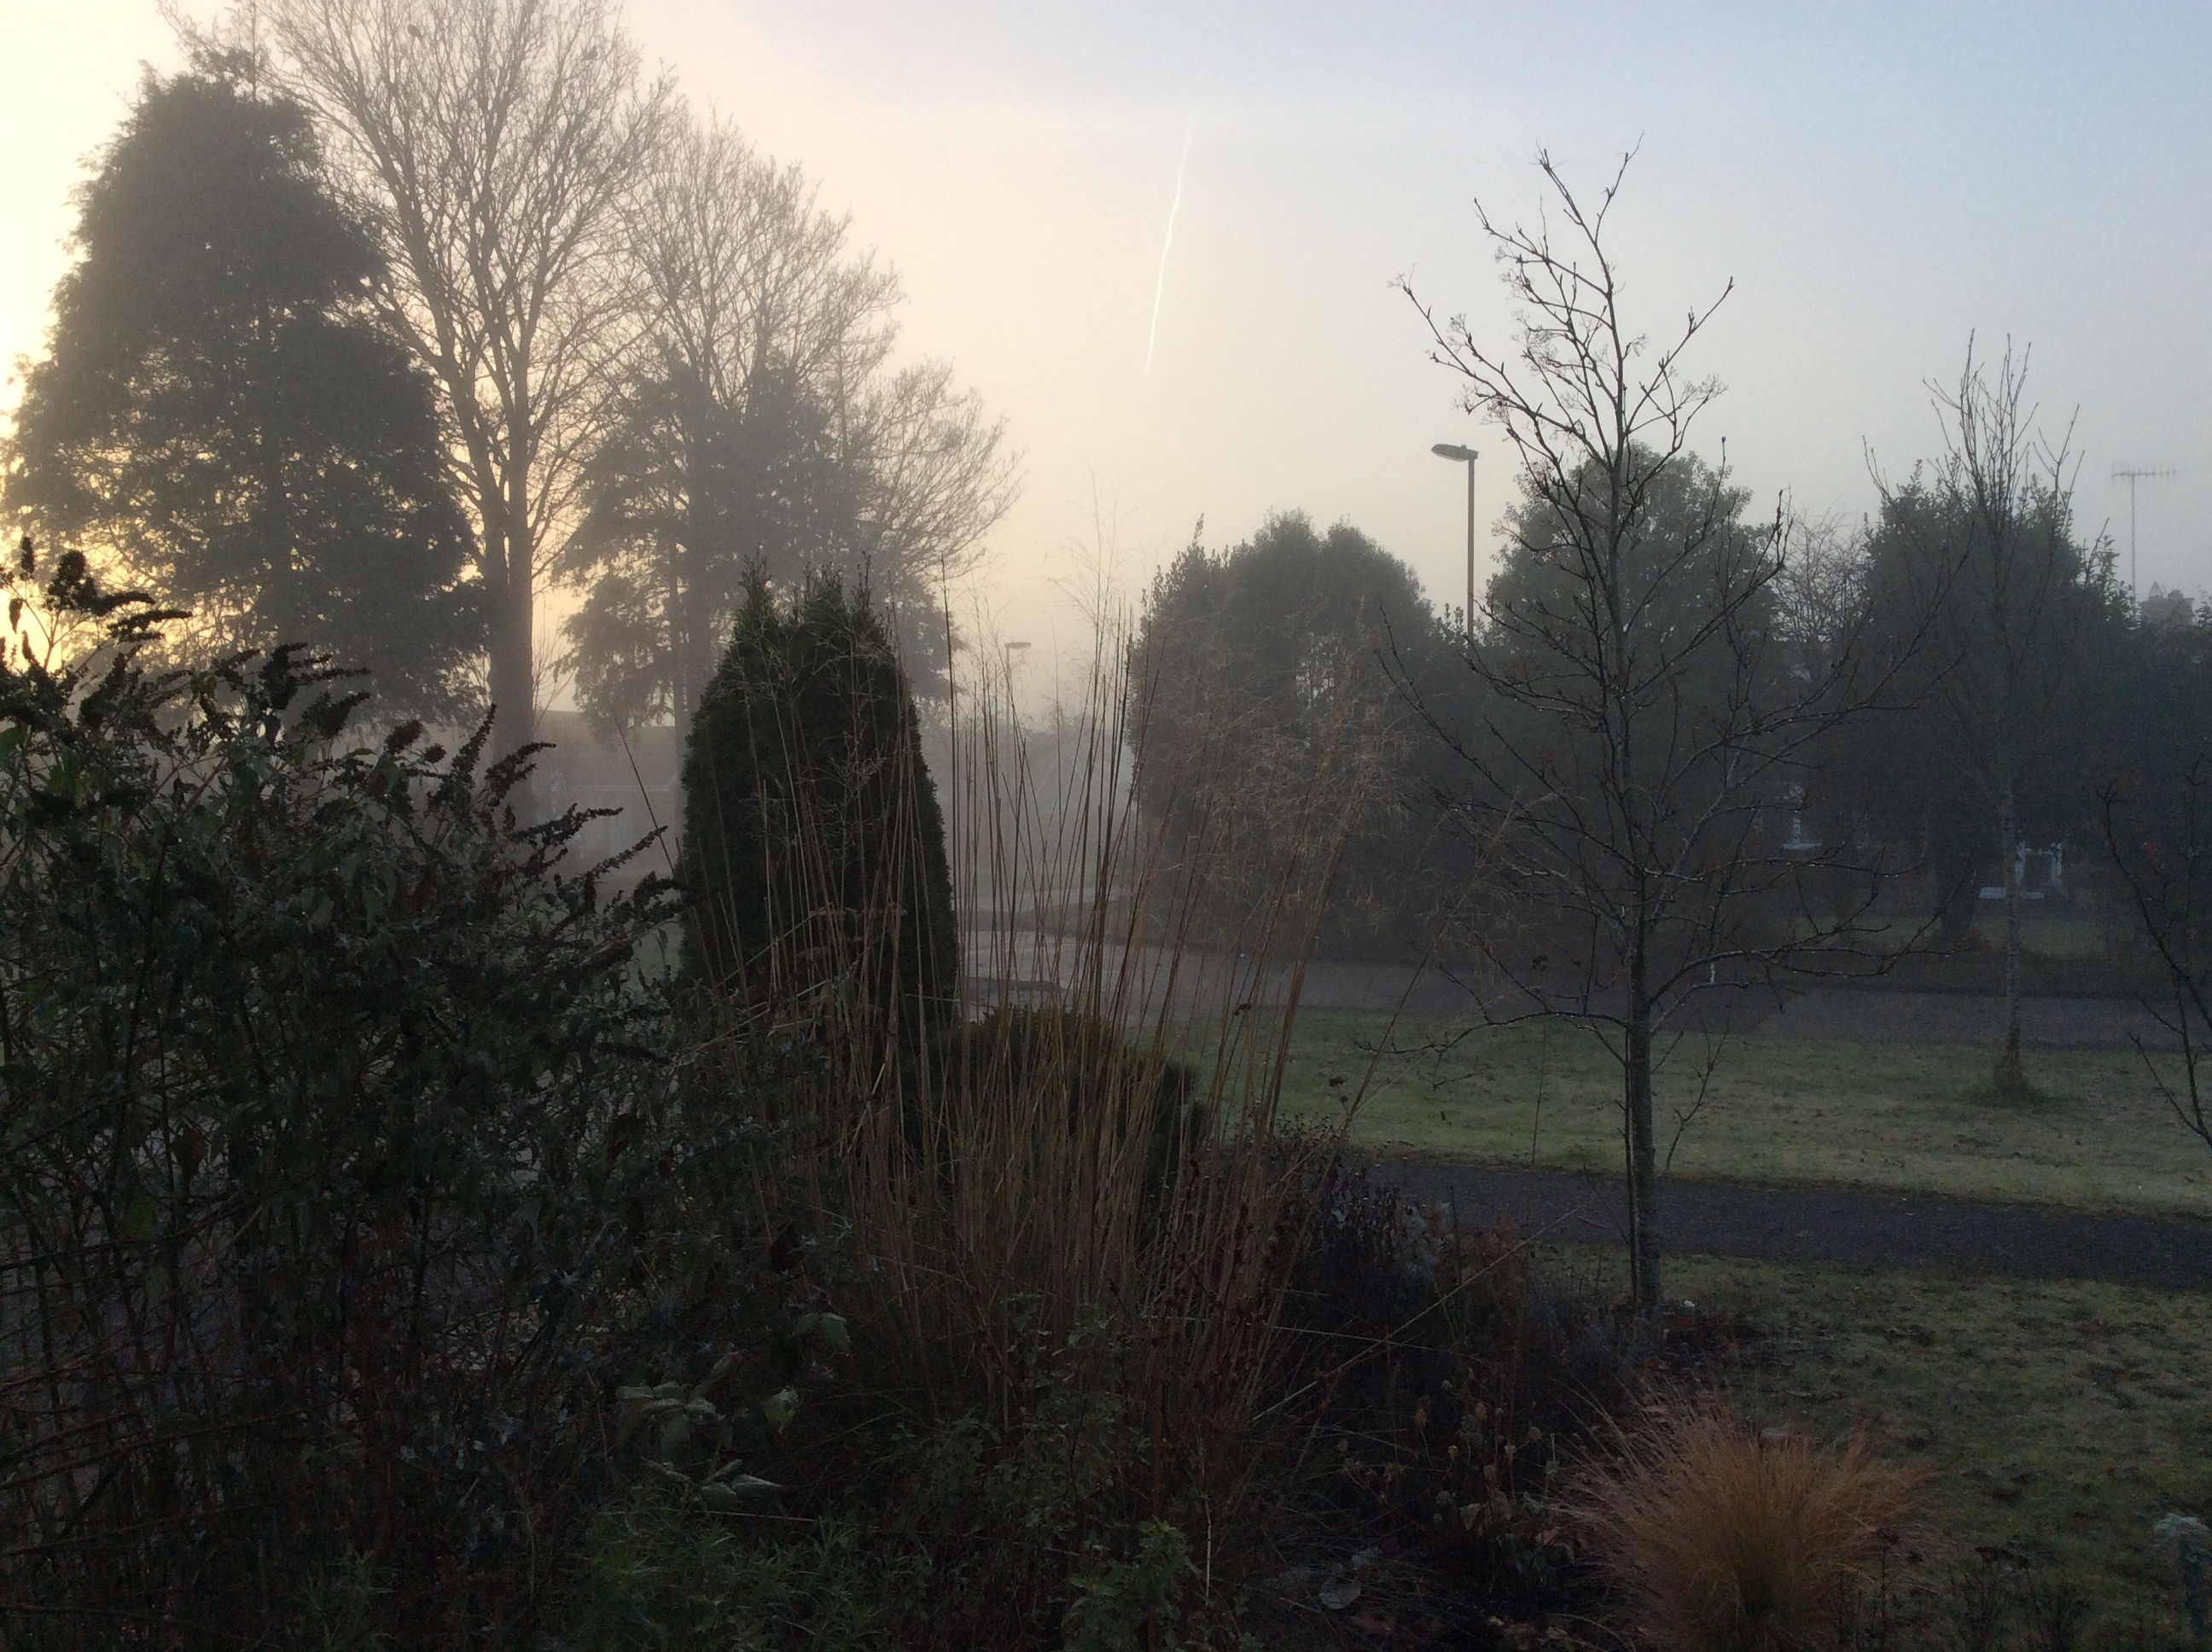 A misty early moring scene